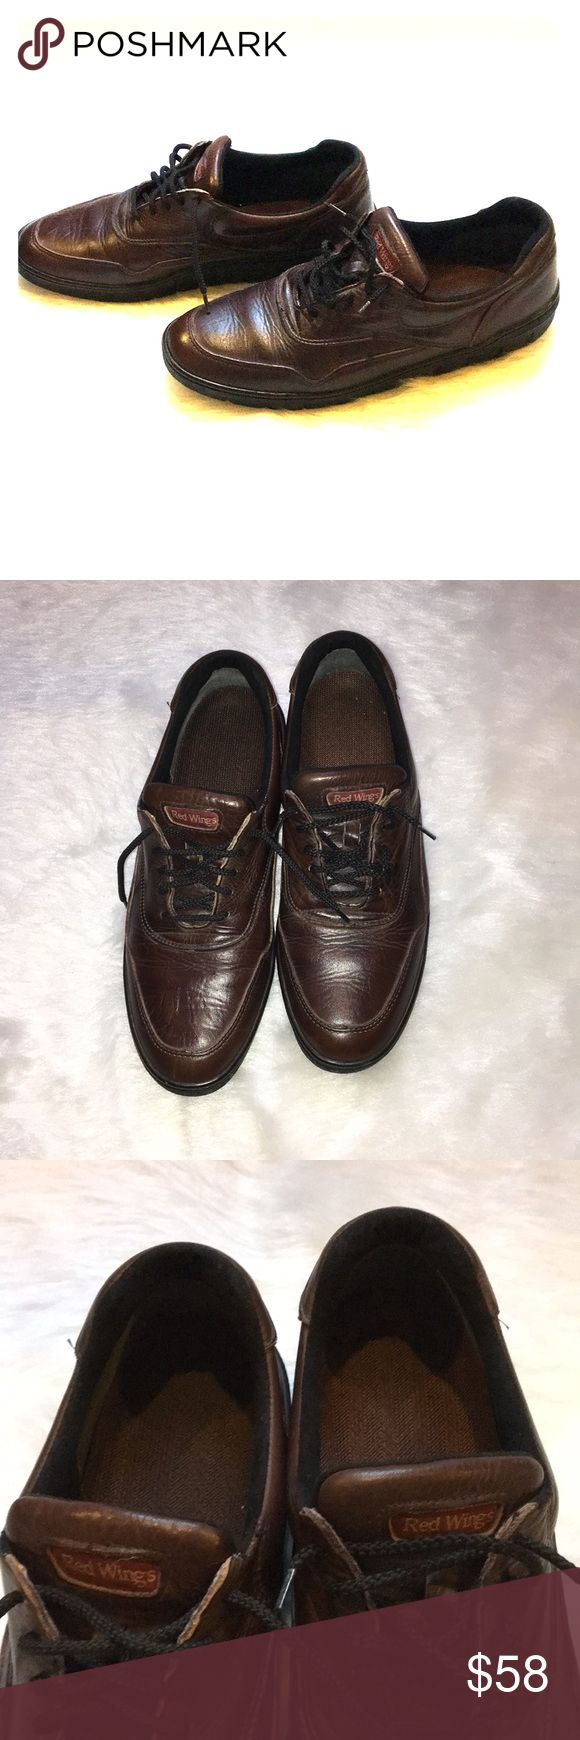 Vintage Red Wings Shoes with Vibram Sole Fantastic condition vintage Red Wing shoes with vibram sole. These babies are comfy, and stylish! The insoles are clean, and they shoes regularly polished. Seriously a great find. Red Wing Shoes Shoes Oxfords & Derbys